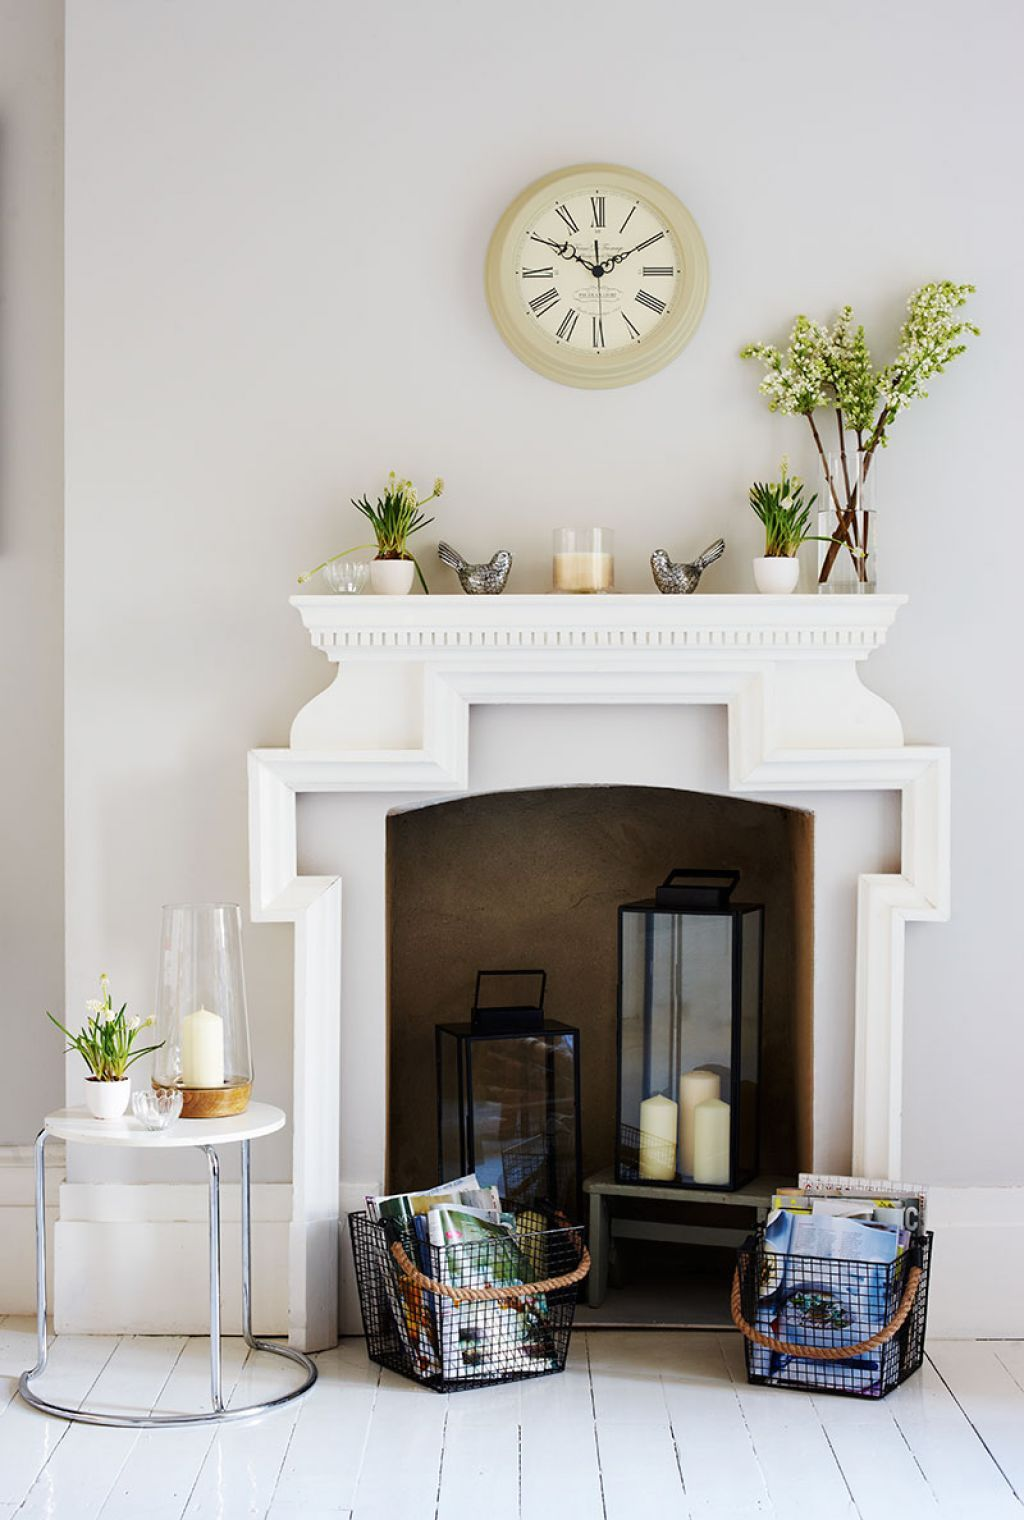 Non Working Fireplace With Lanterns And Accessories | Living rooms ...